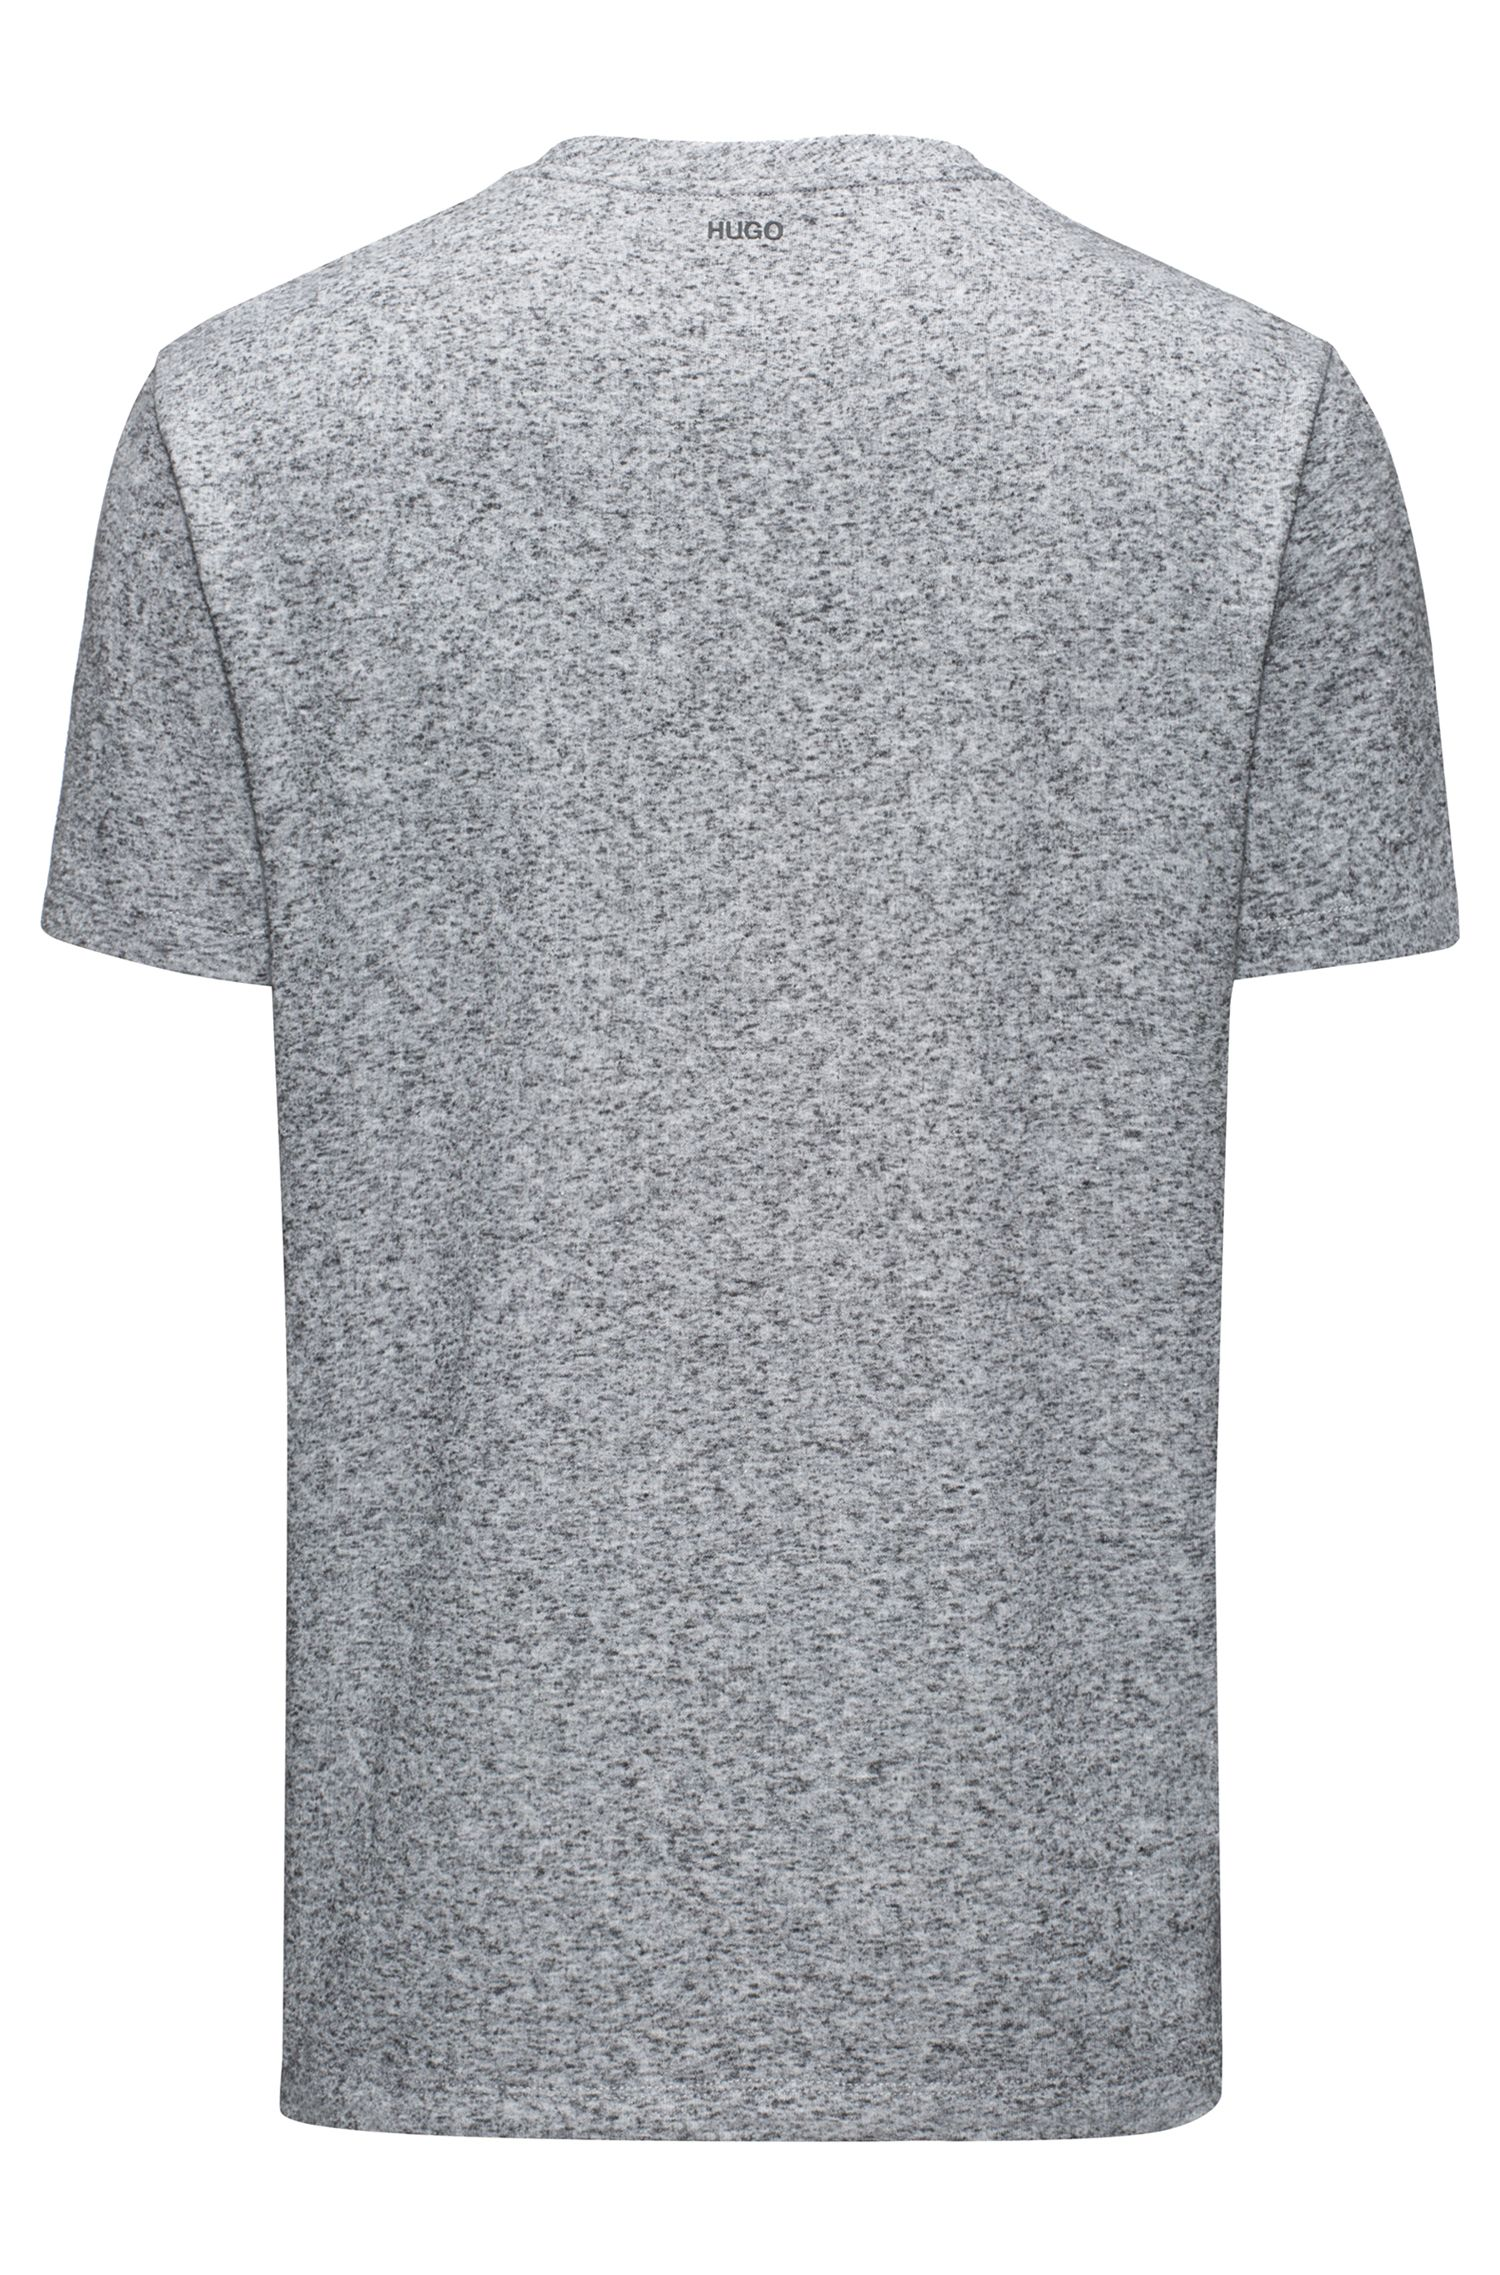 Mouliné French Terry T-Shirt | Delushi, Grey